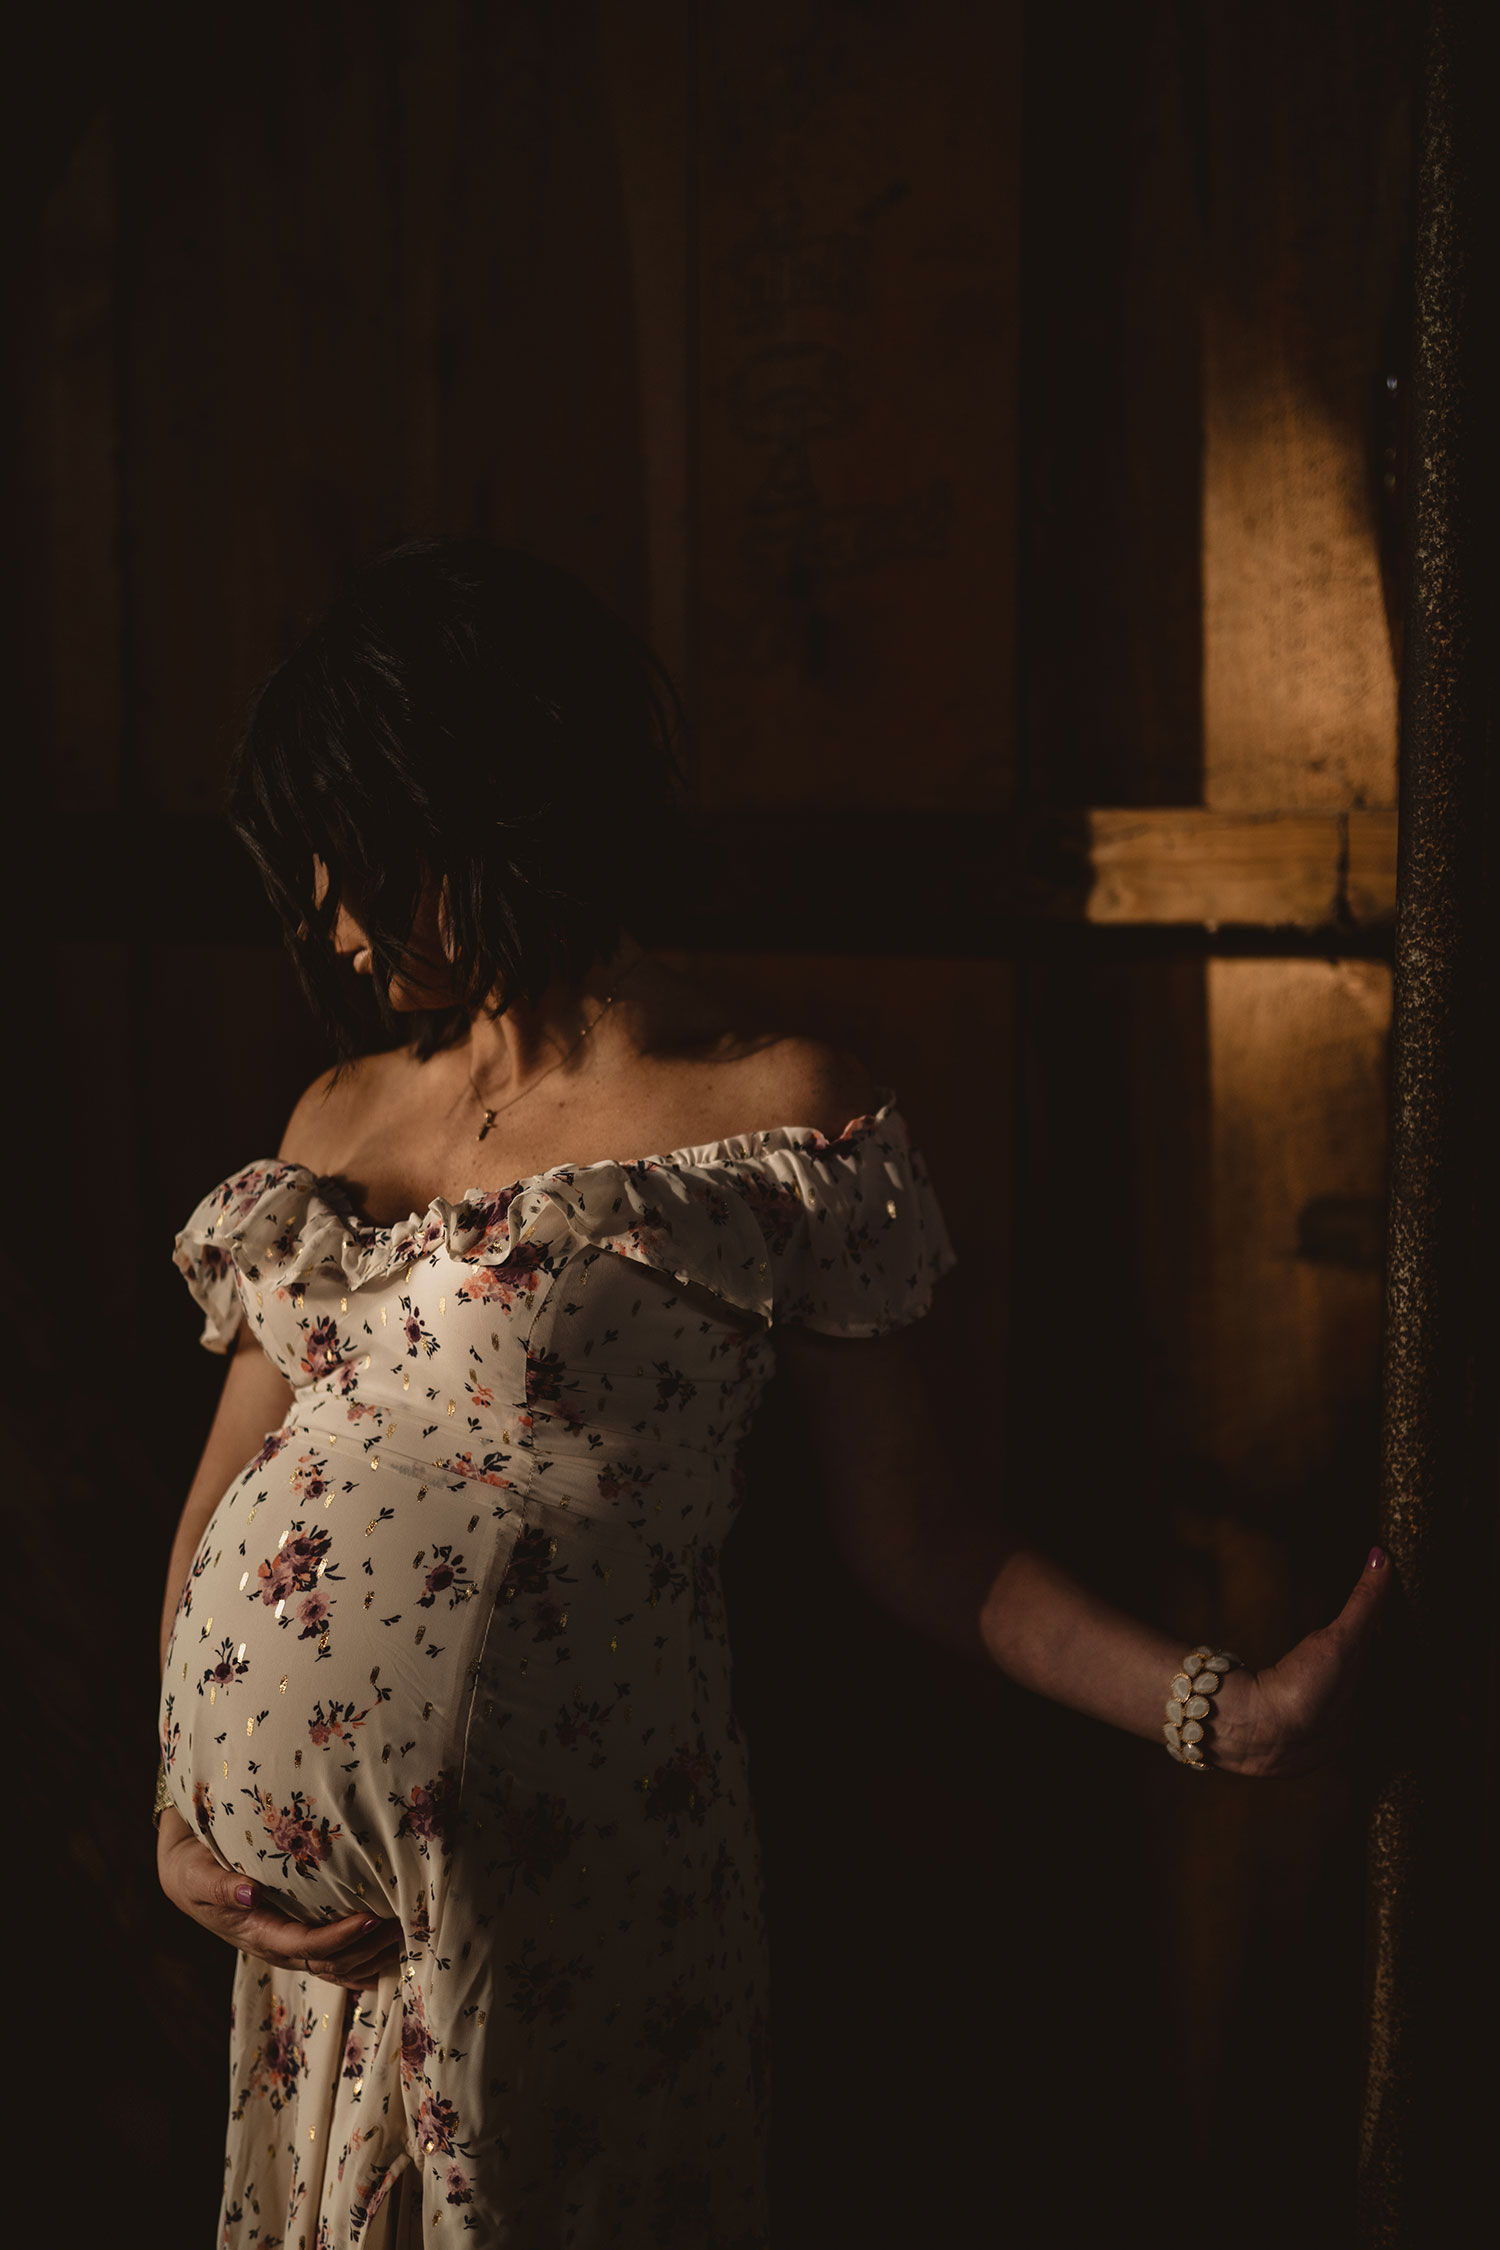 pregnant-woman-standing-in-moody-light-maternity-desmoines-iowa-raelyn-ramey-photography.jpg